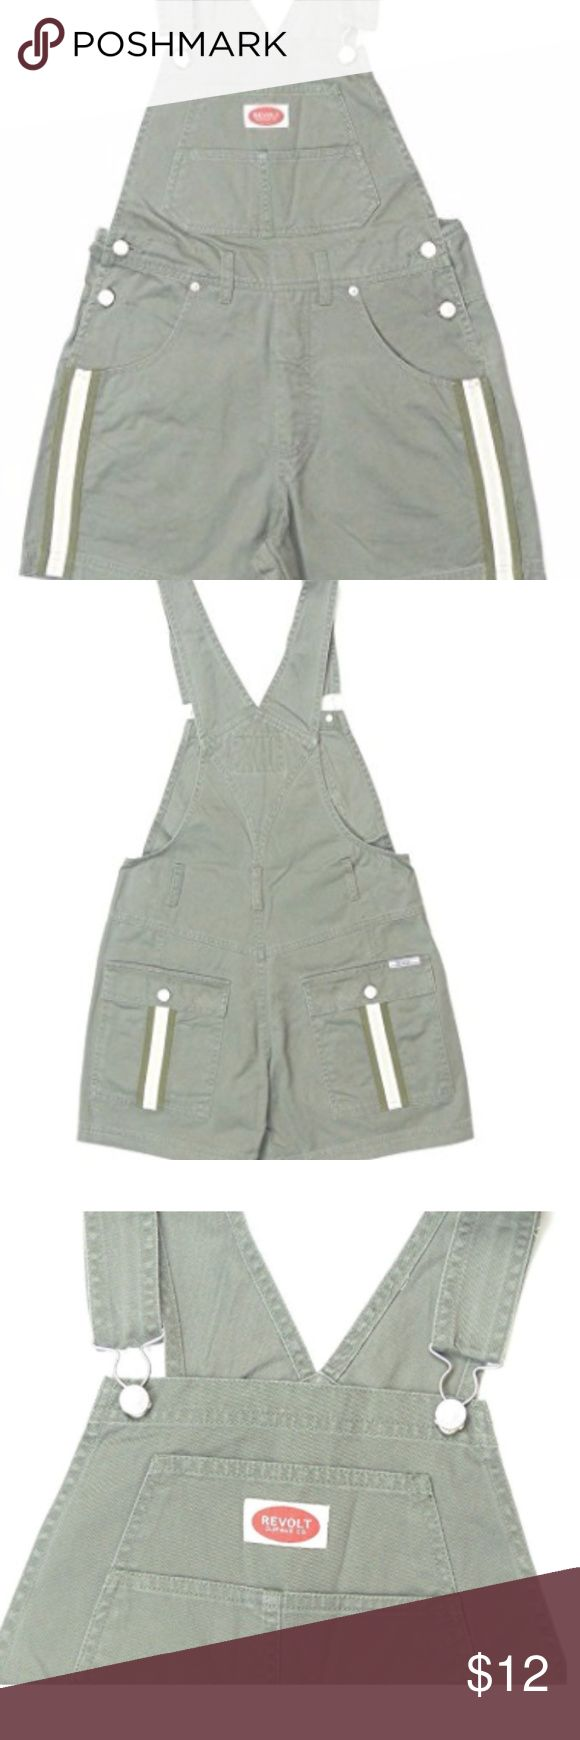 Revolt Women's Bib Khaki Overalls These were gently worn with some distress denim visible. They fit like a Medium or size 8. They're a little wrinkley at the moment but are 100% cotton, so iron quite easily.   100% Cotton Olive green colored denim bib shortalls featuring shoulder clips, side button closure Adjustable bibs with waist belt loops Measurements (size medium): Waist- 16 inches, Hips- 18 inches, Inseam- 4 inches Machine washable Six pocket style- flaps on back pocke Revolt Jeans…